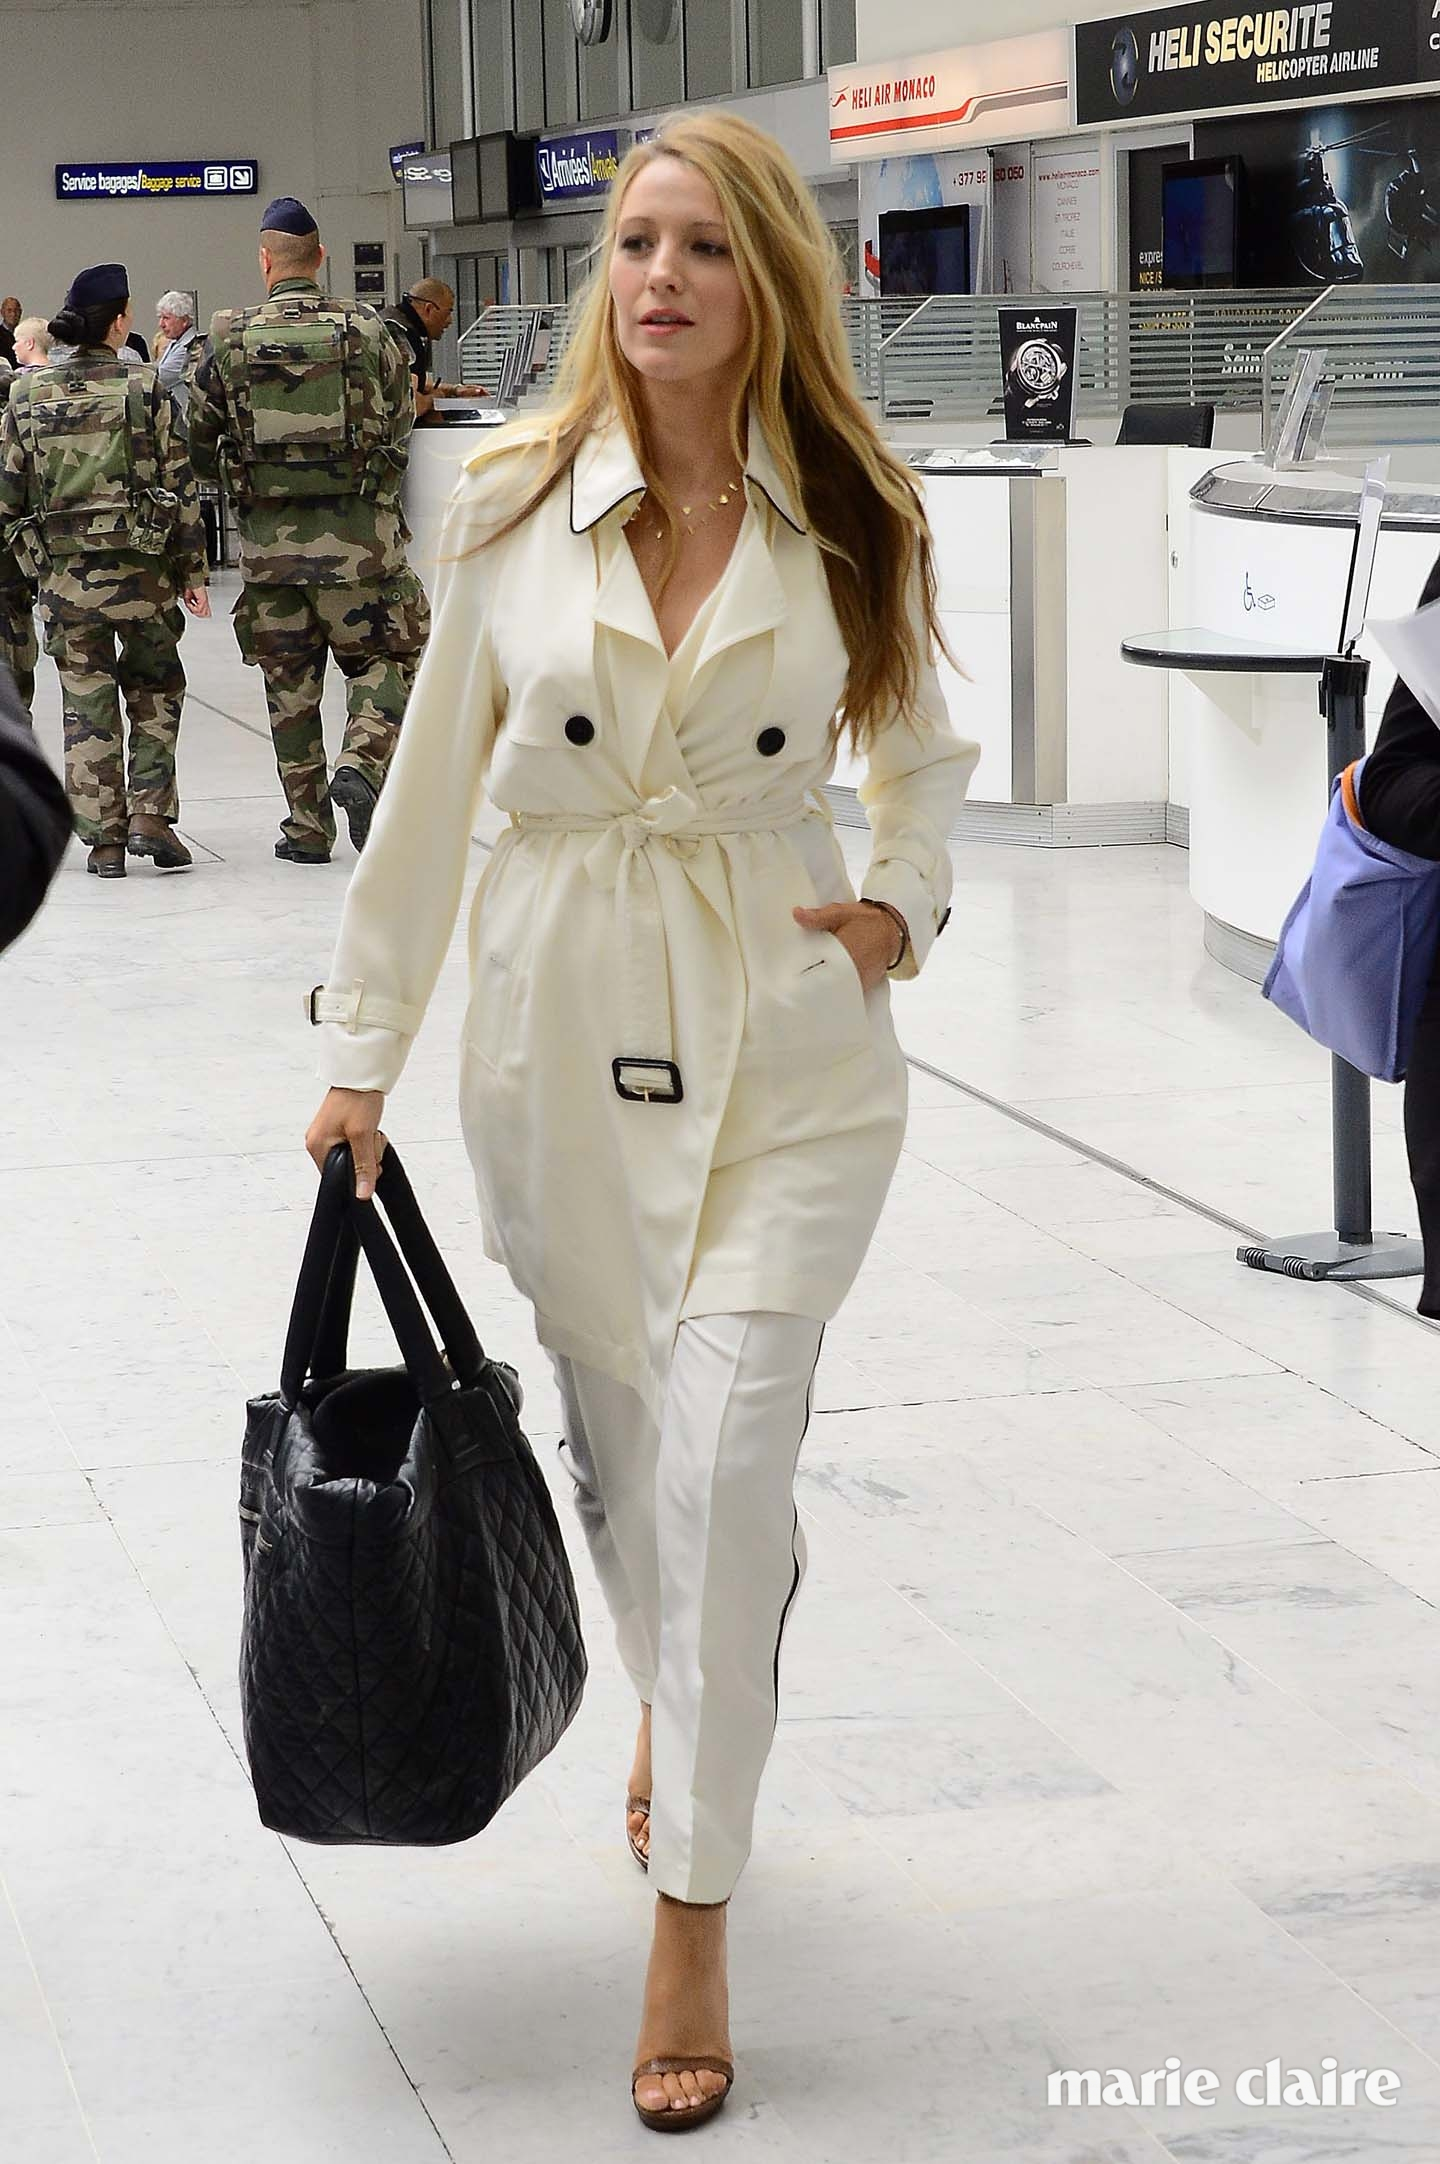 Blake Lively arrives at Nice Cote D'Azure airport ahead of the 2016 Cannes Film Festival Featuring: Blake Lively Where: Nice, France When: 09 May 2016 Credit: Radoslaw Nawrocki/WENN.com **Not available for publication in Poland**